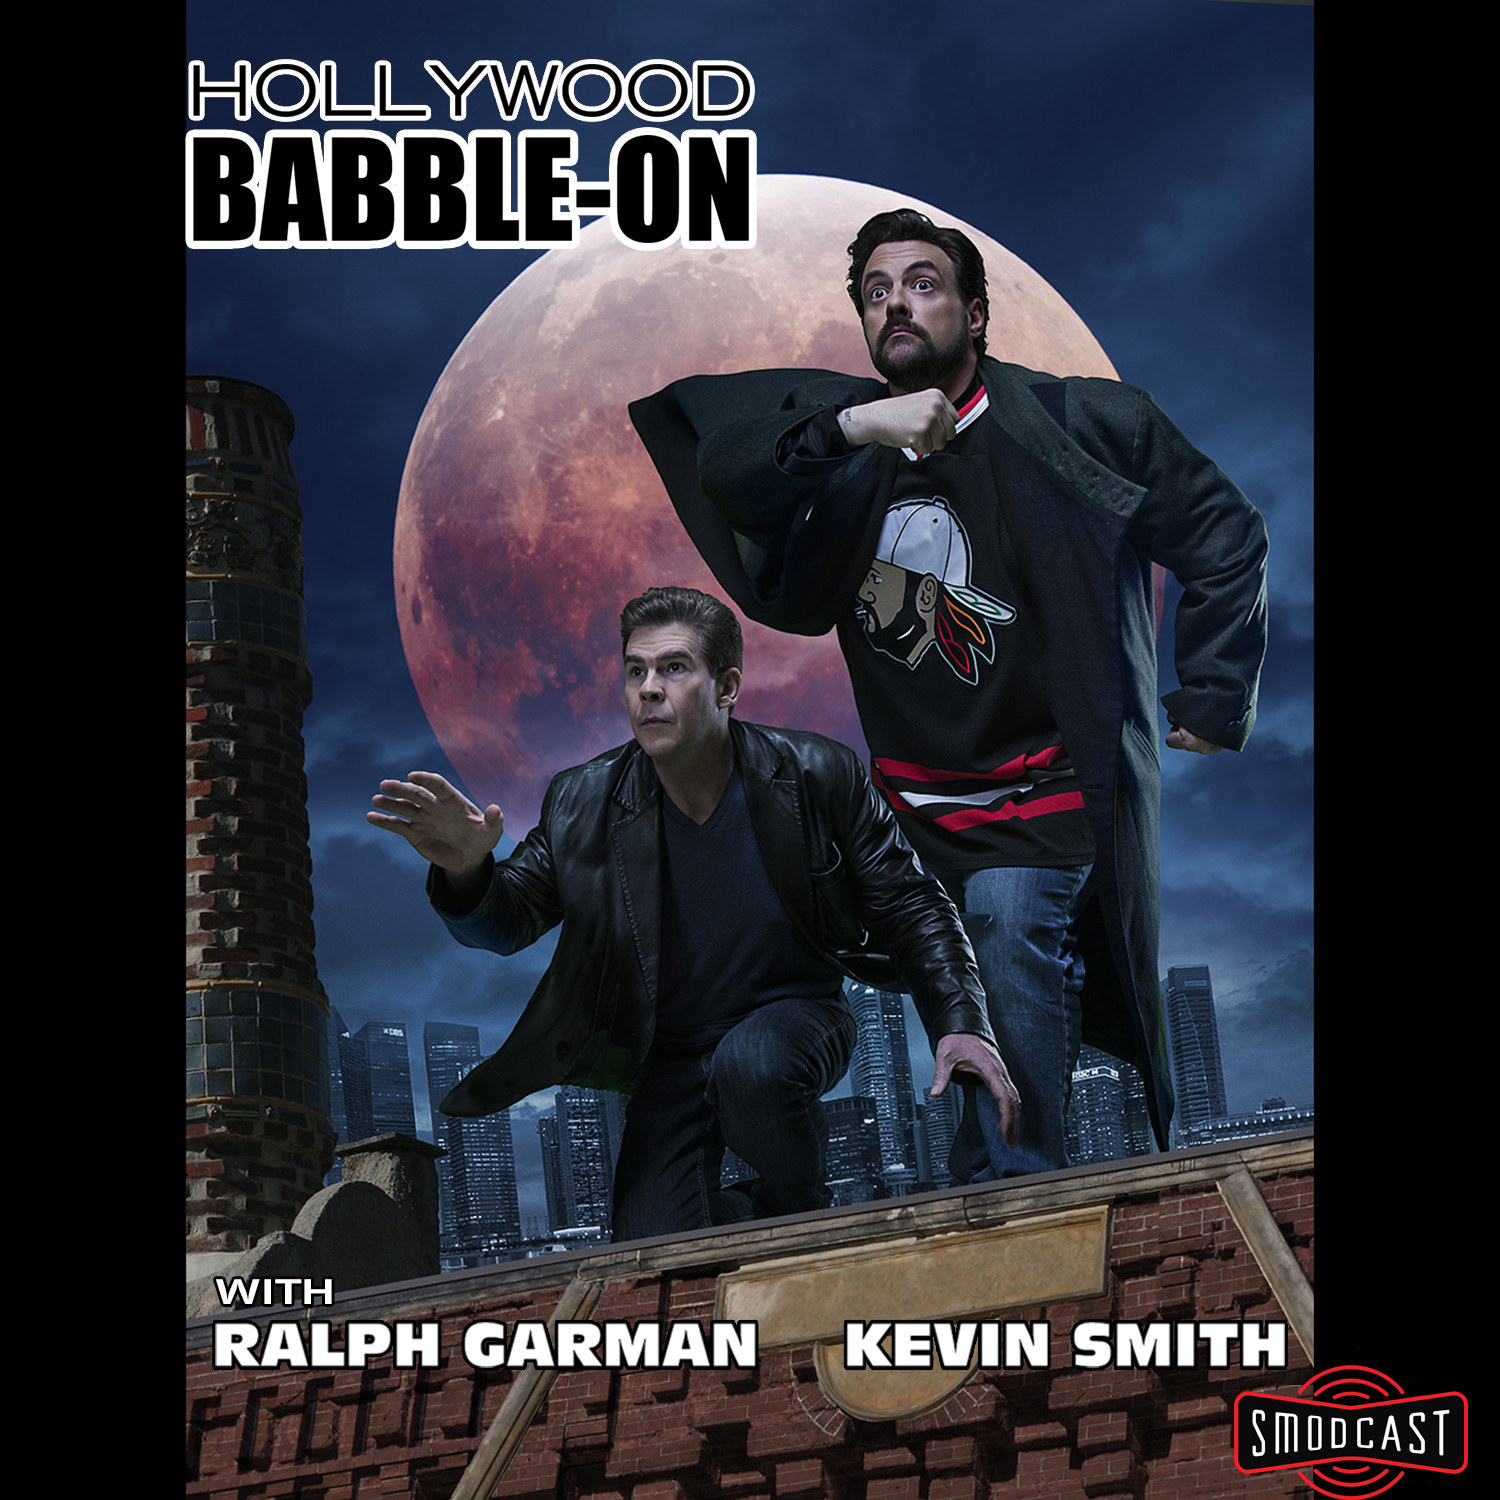 341: New Year's Babble-Eve 2018